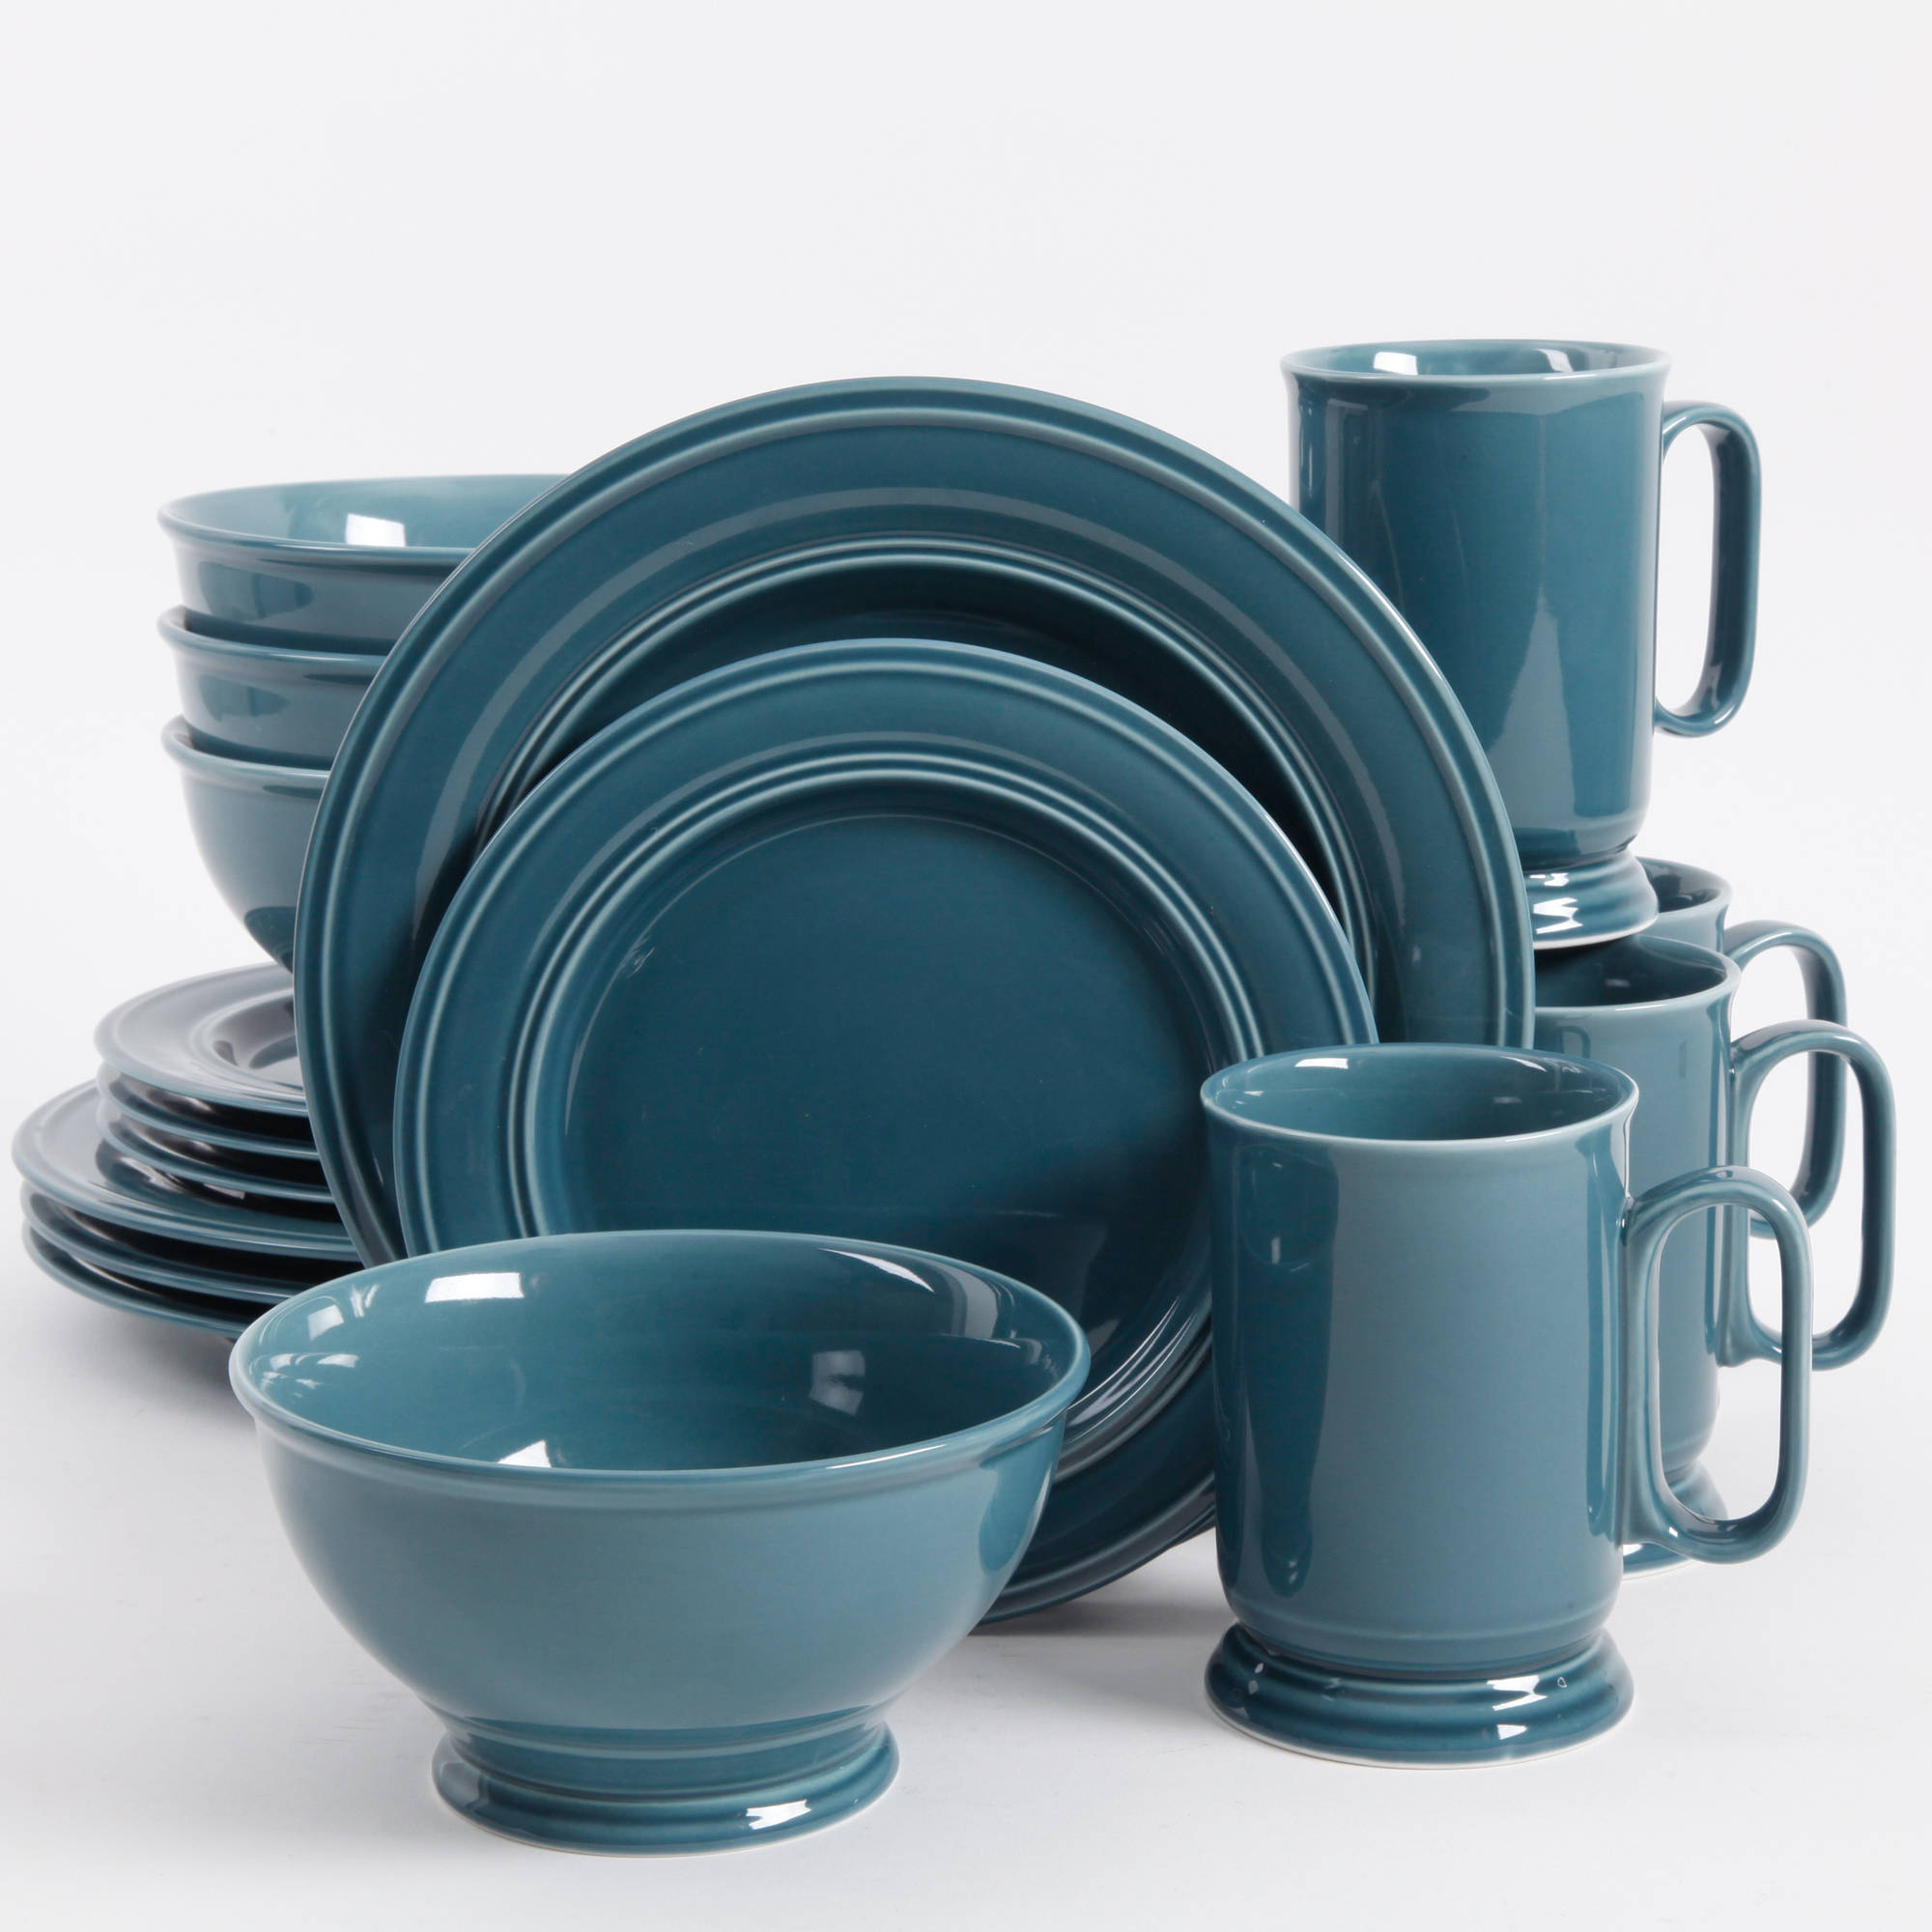 Better Homes & Gardens Admiraware 16-Piece Dinnerware Set, Round